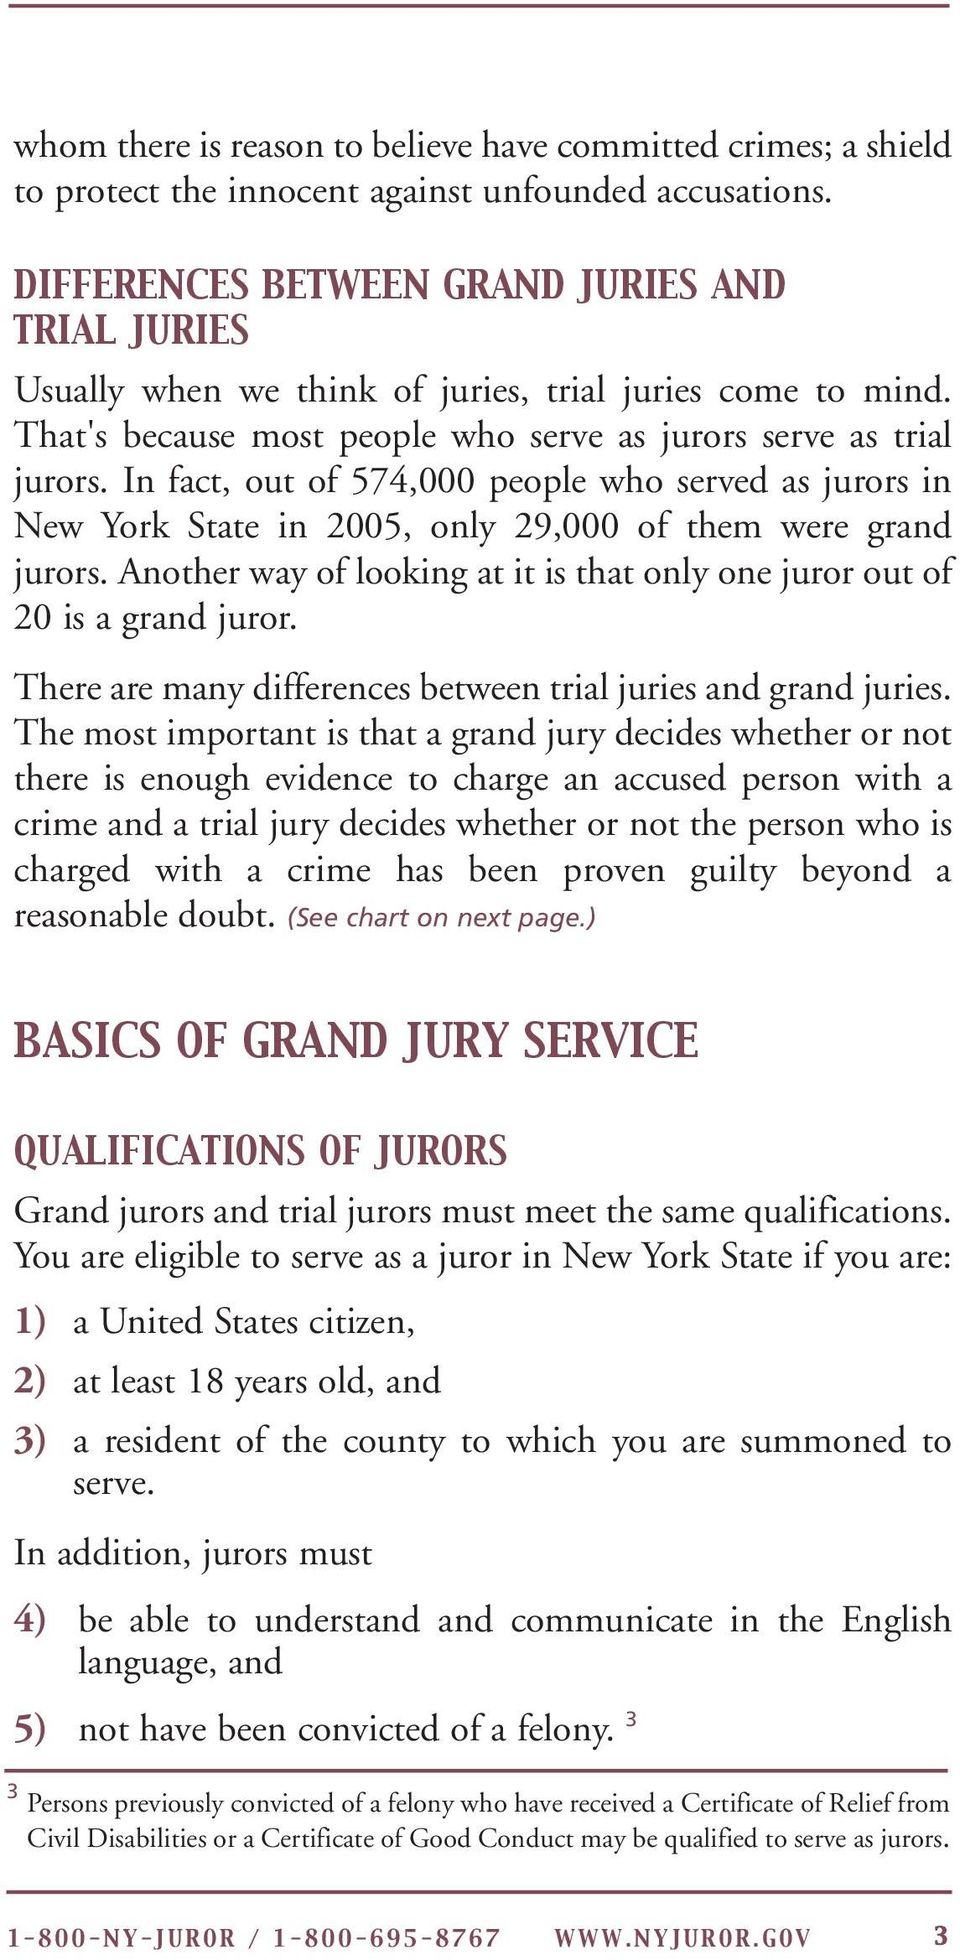 In fact, out of 574,000 people who served as jurors in New York State in 2005, only 29,000 of them were grand jurors. Another way of looking at it is that only one juror out of 20 is a grand juror.